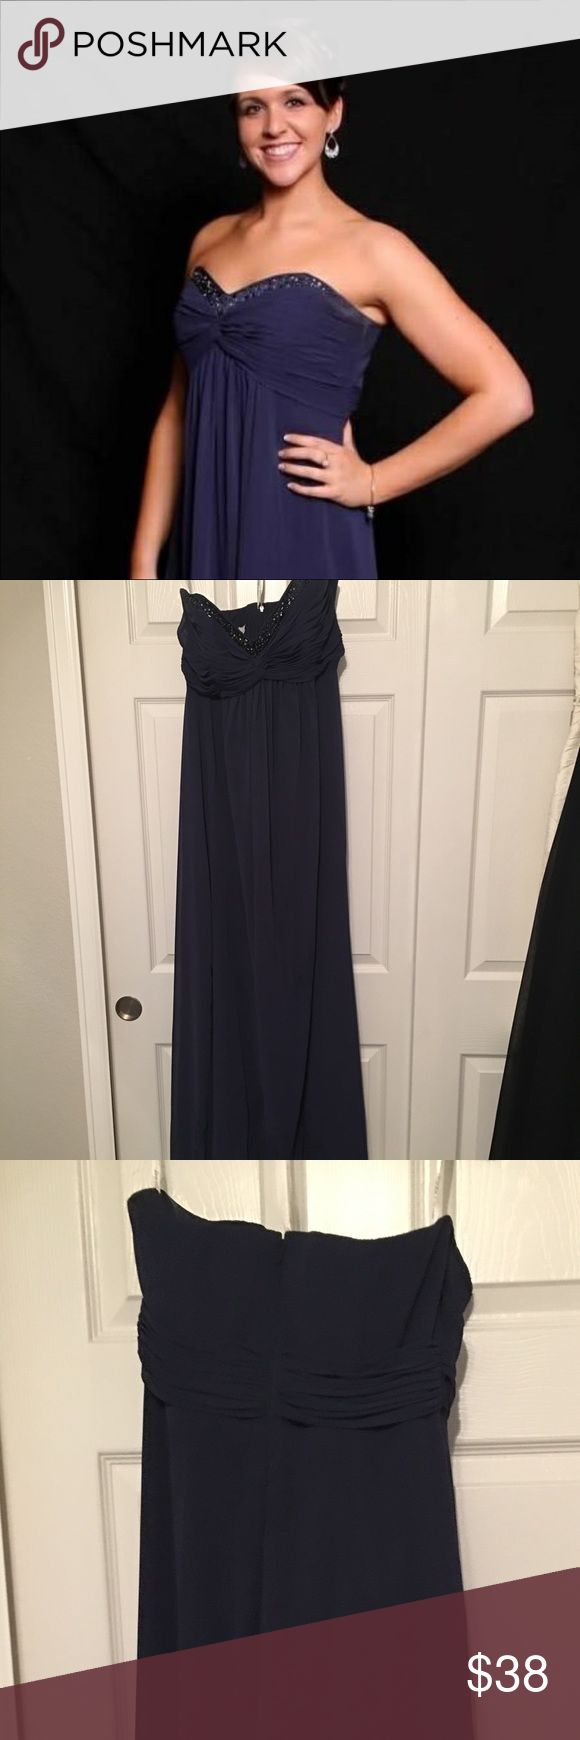 David's Bridal Dress Navy blue, David's Bridal brides maids dress. Some wear at arm pit, dry cleaning or even a spot clean would do the trick.  Great for prom, a wedding, or a ball. David's Bridal Dresses Strapless